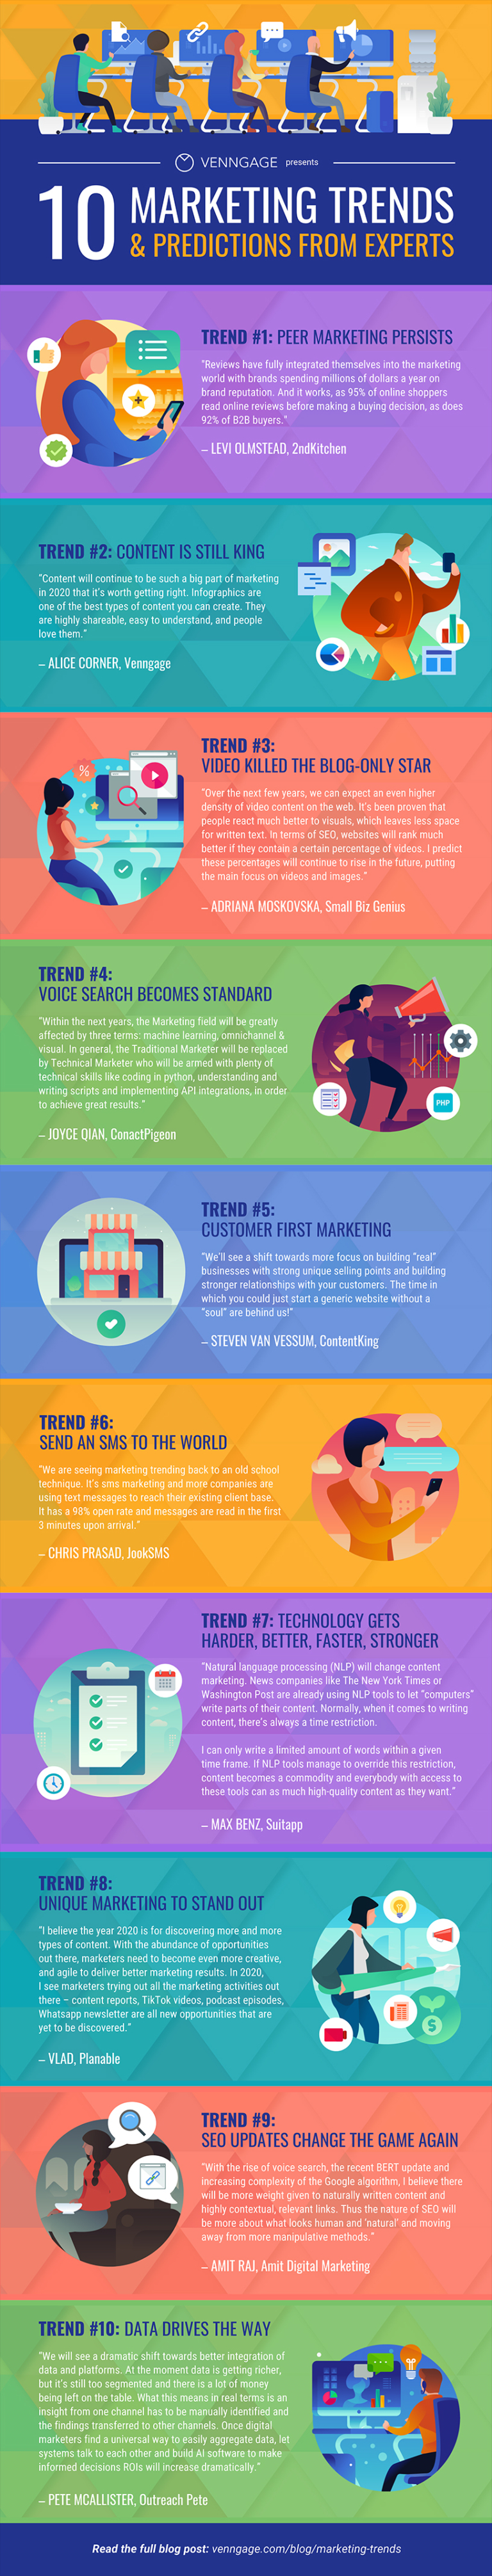 Infographic outlines 10 marketing trends for 2020